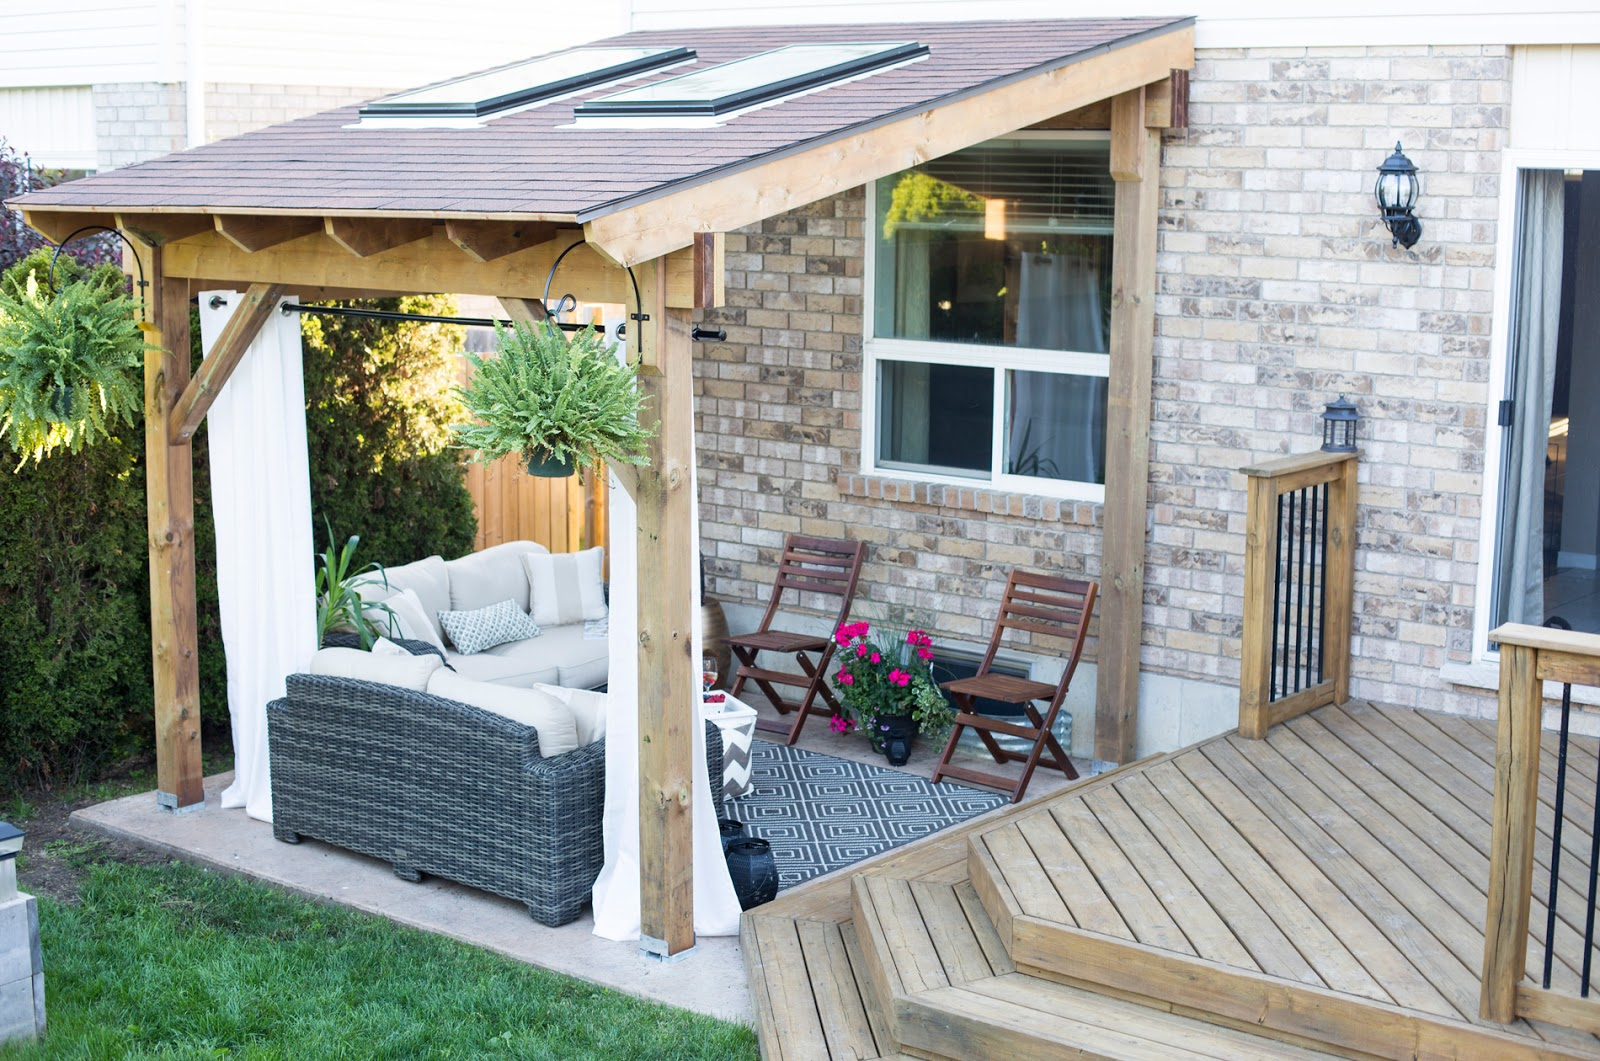 Easy build Covered patios designs - CareHomeDecor on Small Outdoor Covered Patio Ideas id=58067